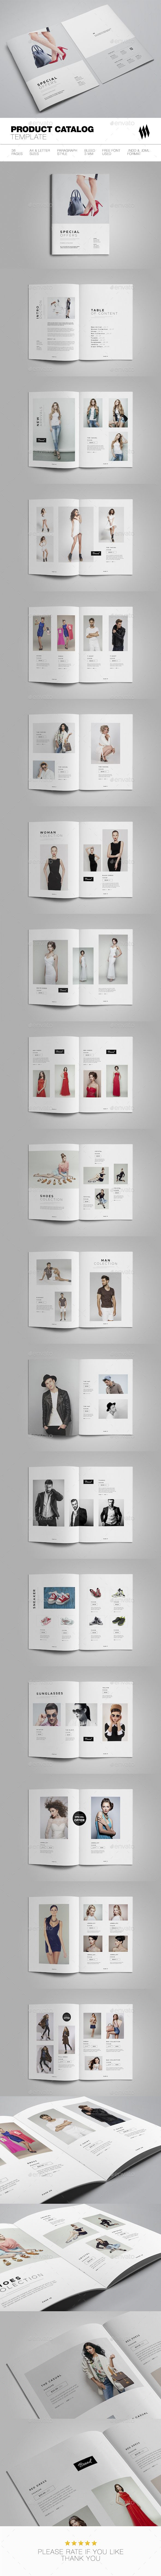 Product Catalog Template — InDesign INDD #print ready #product brochure • Download ➝ https://graphicriver.net/item/product-catalog-template/19180182?ref=pxcr